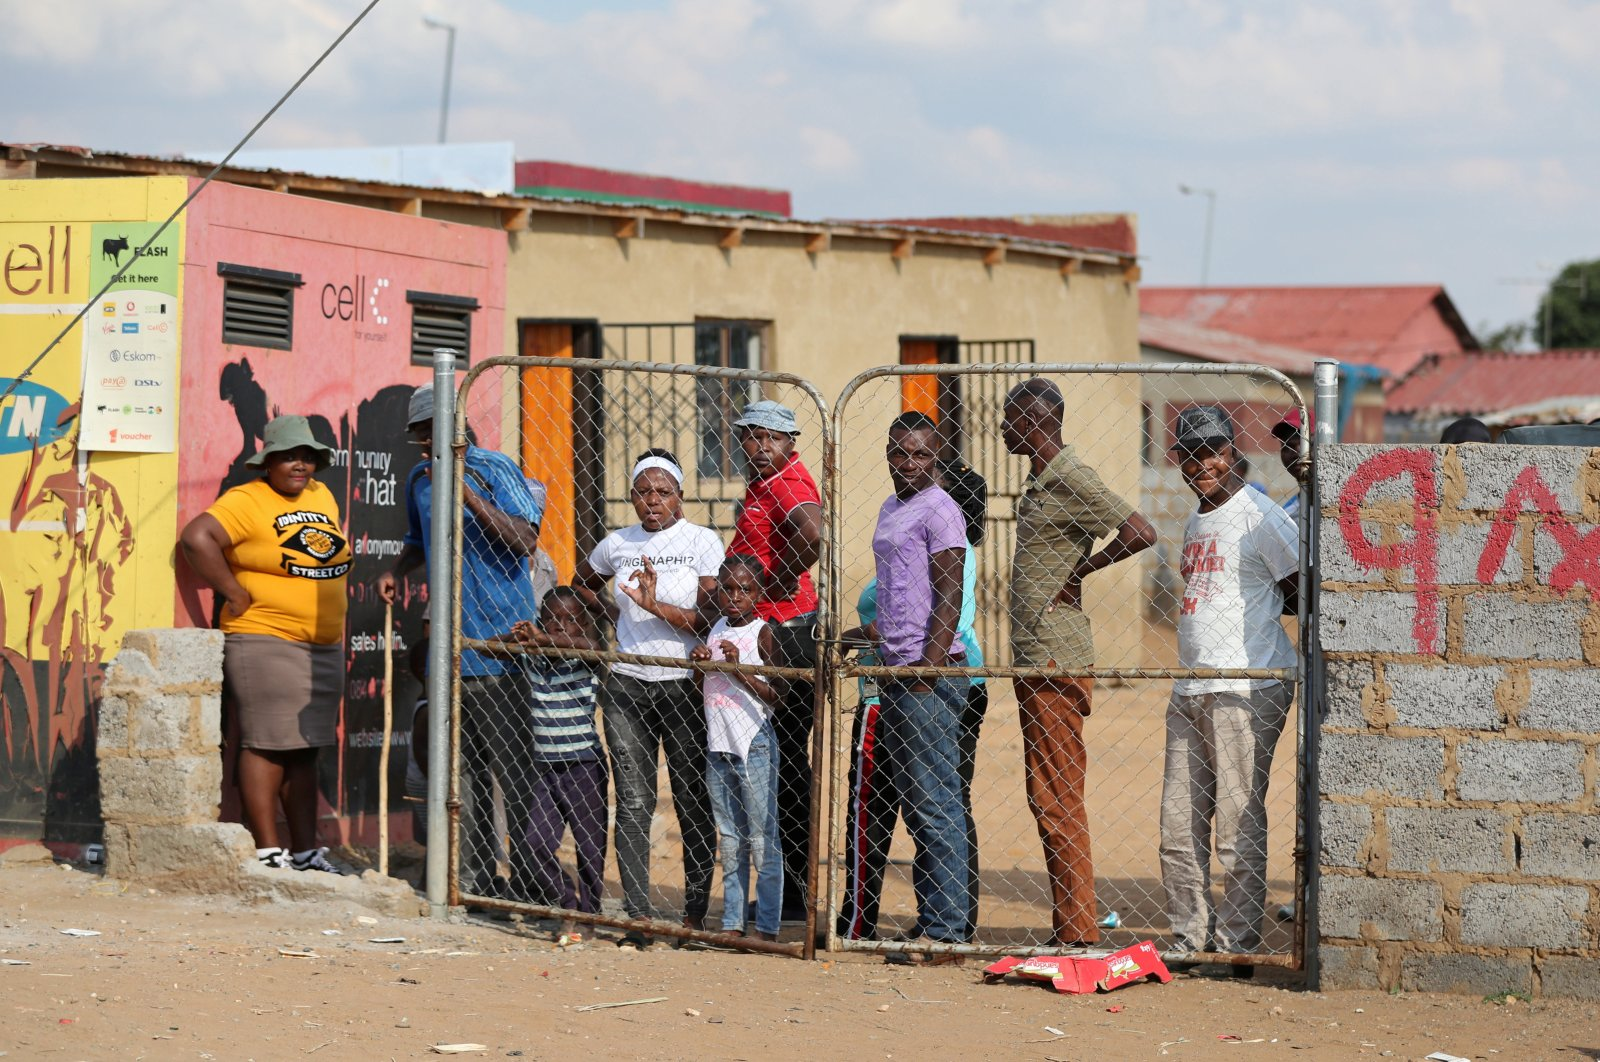 Residents look from behind a closed gate as members of the military patrol during a nationwide lockdown, Soweto, South Africa, April 23, 2020. (REUTERS Photo)